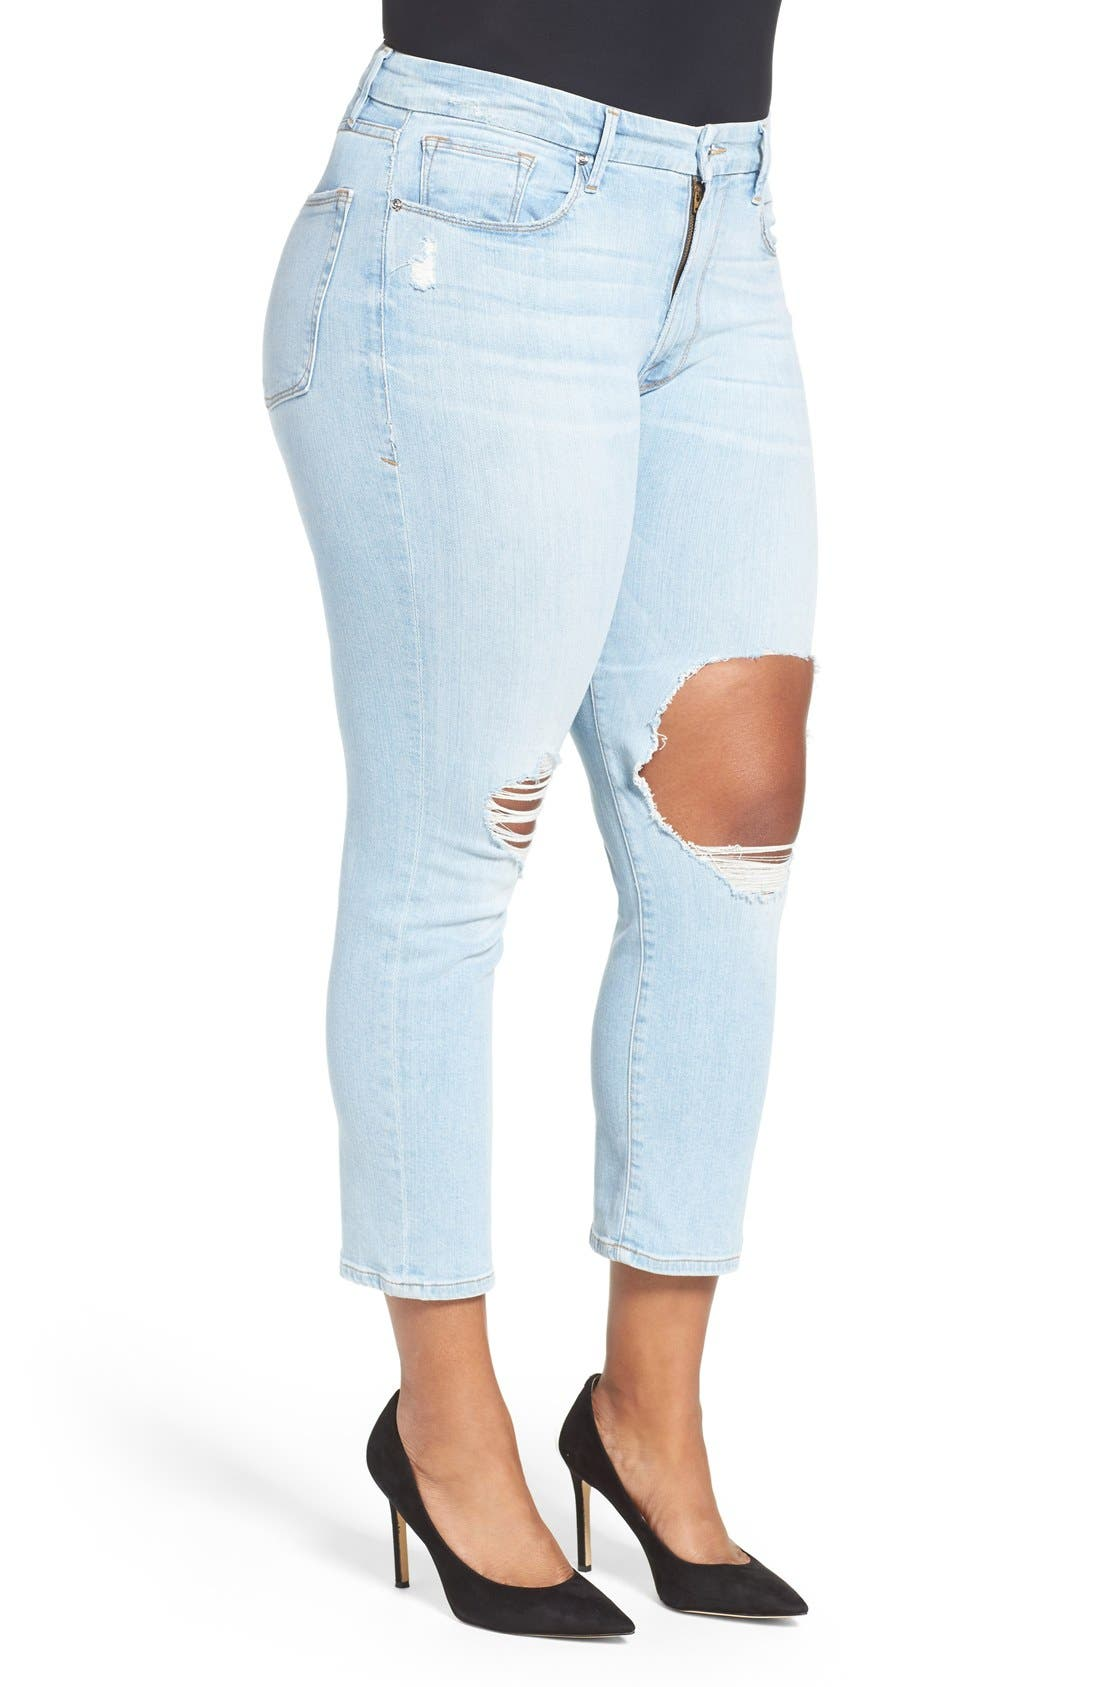 Good Cuts High Rise Boyfriend Jeans,                             Alternate thumbnail 6, color,                             401